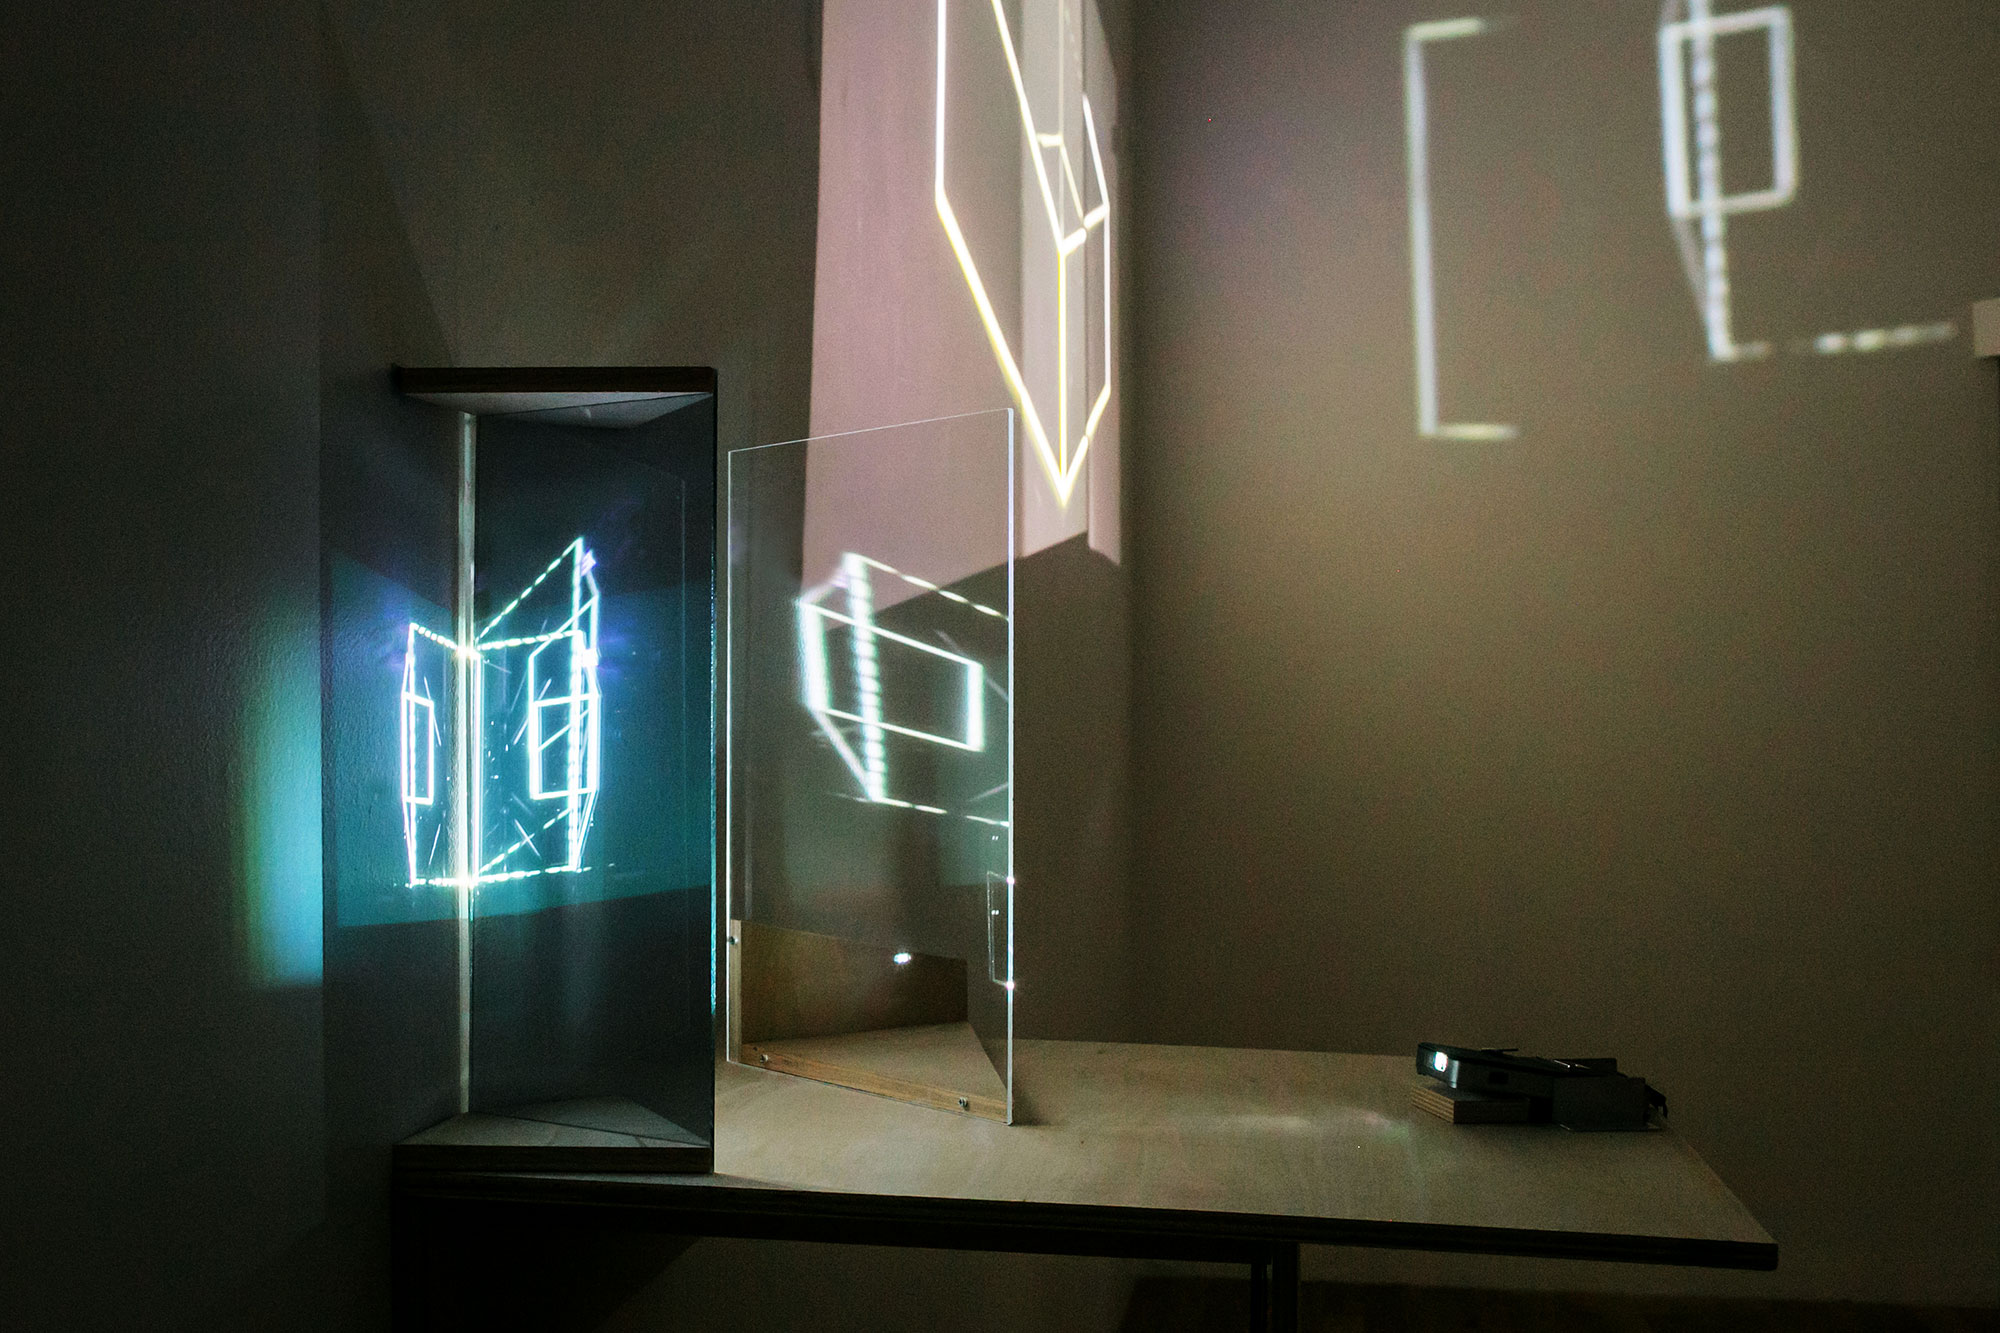 Floating Room (Station Independent), 2013, 00:14:30 minute loop, color, no audio, approximate dimensions: h 15 x l 30 x w 15 feet, two video projections, plexiglass, wood